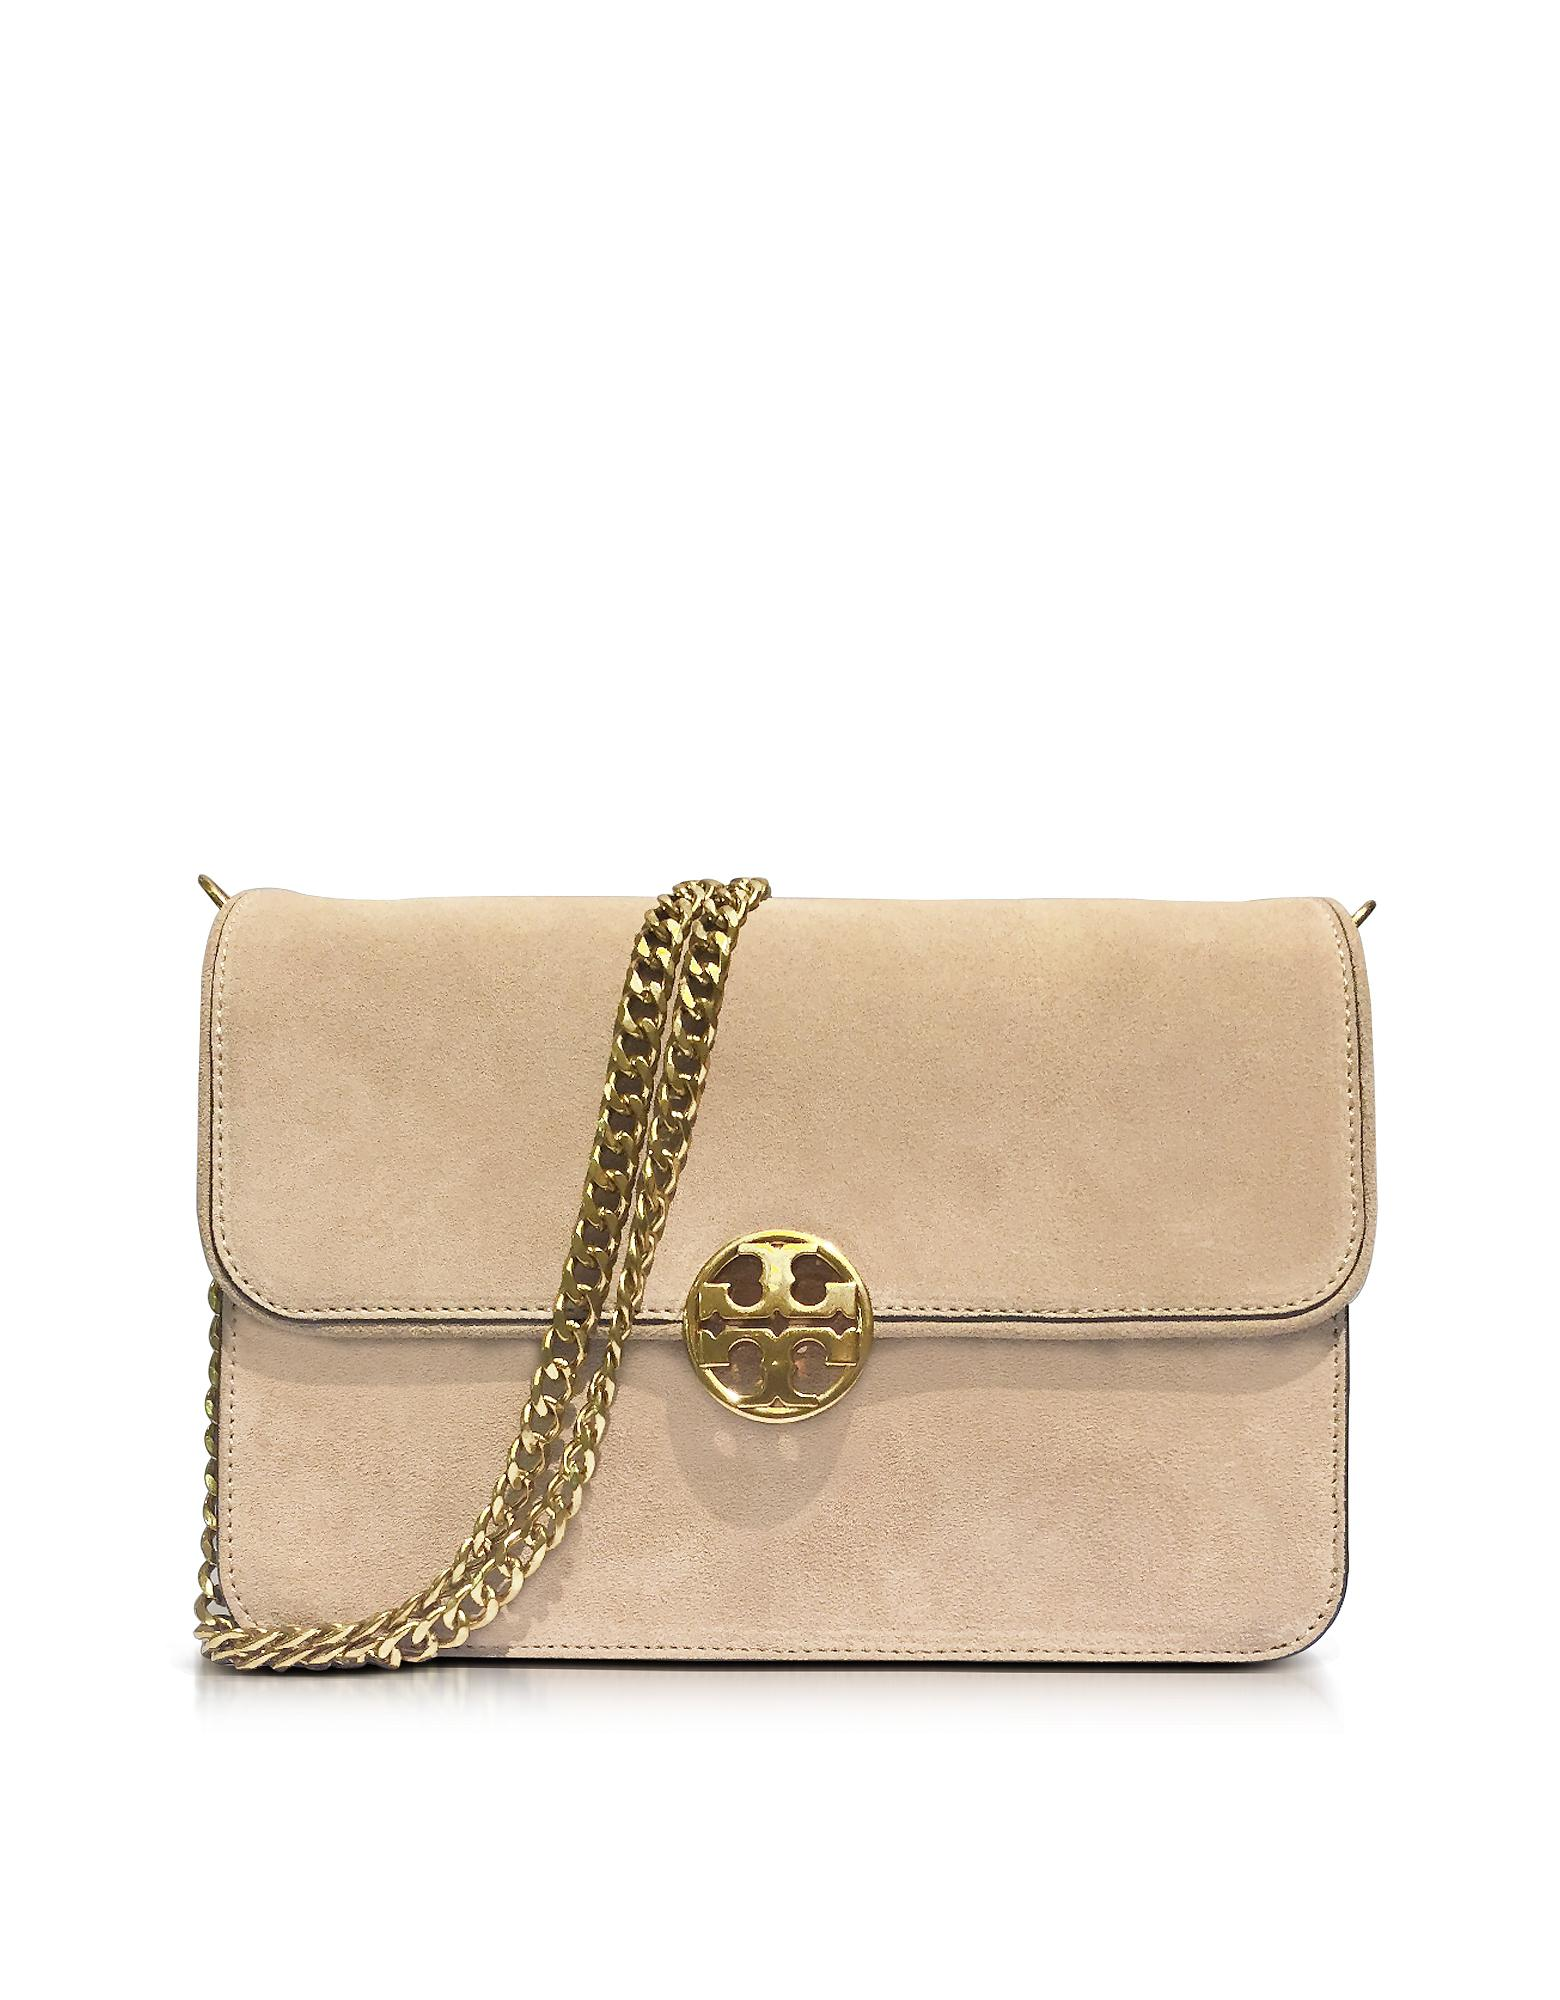 8640dea1b13a Lyst - Tory Burch Chelsea Stucco Suede Shoulder Bag in Natural